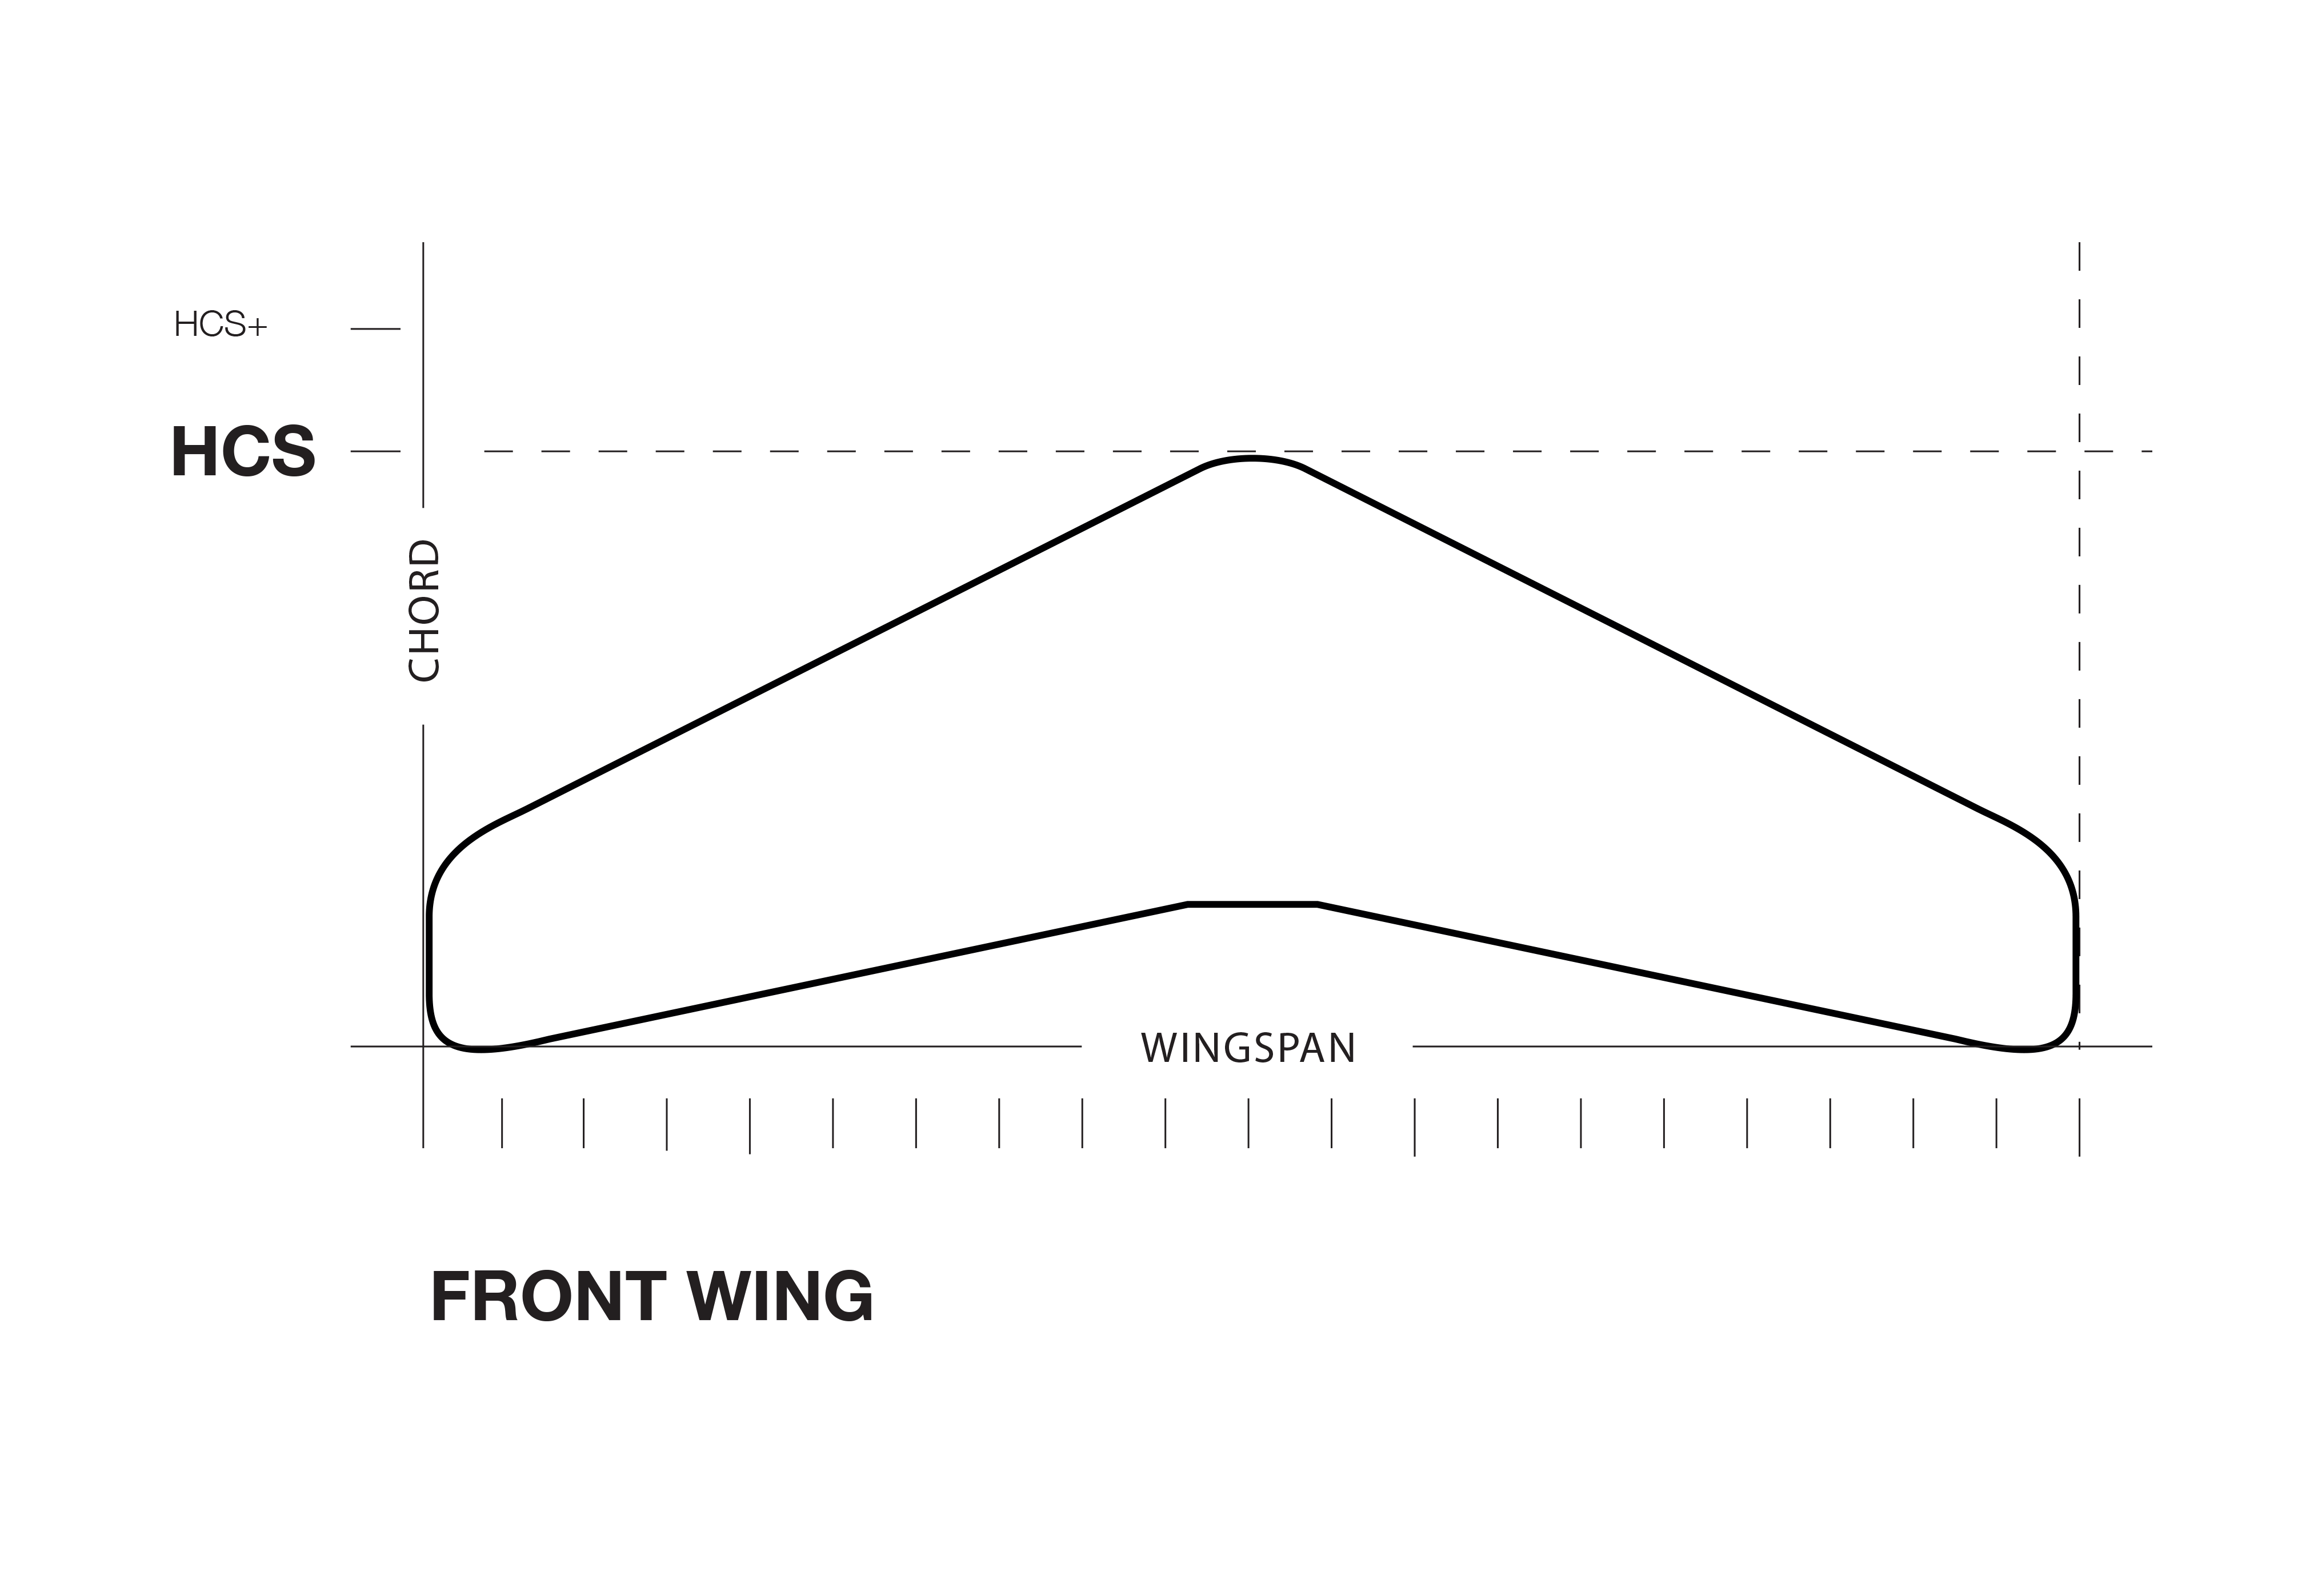 HCS_FRONT_WING